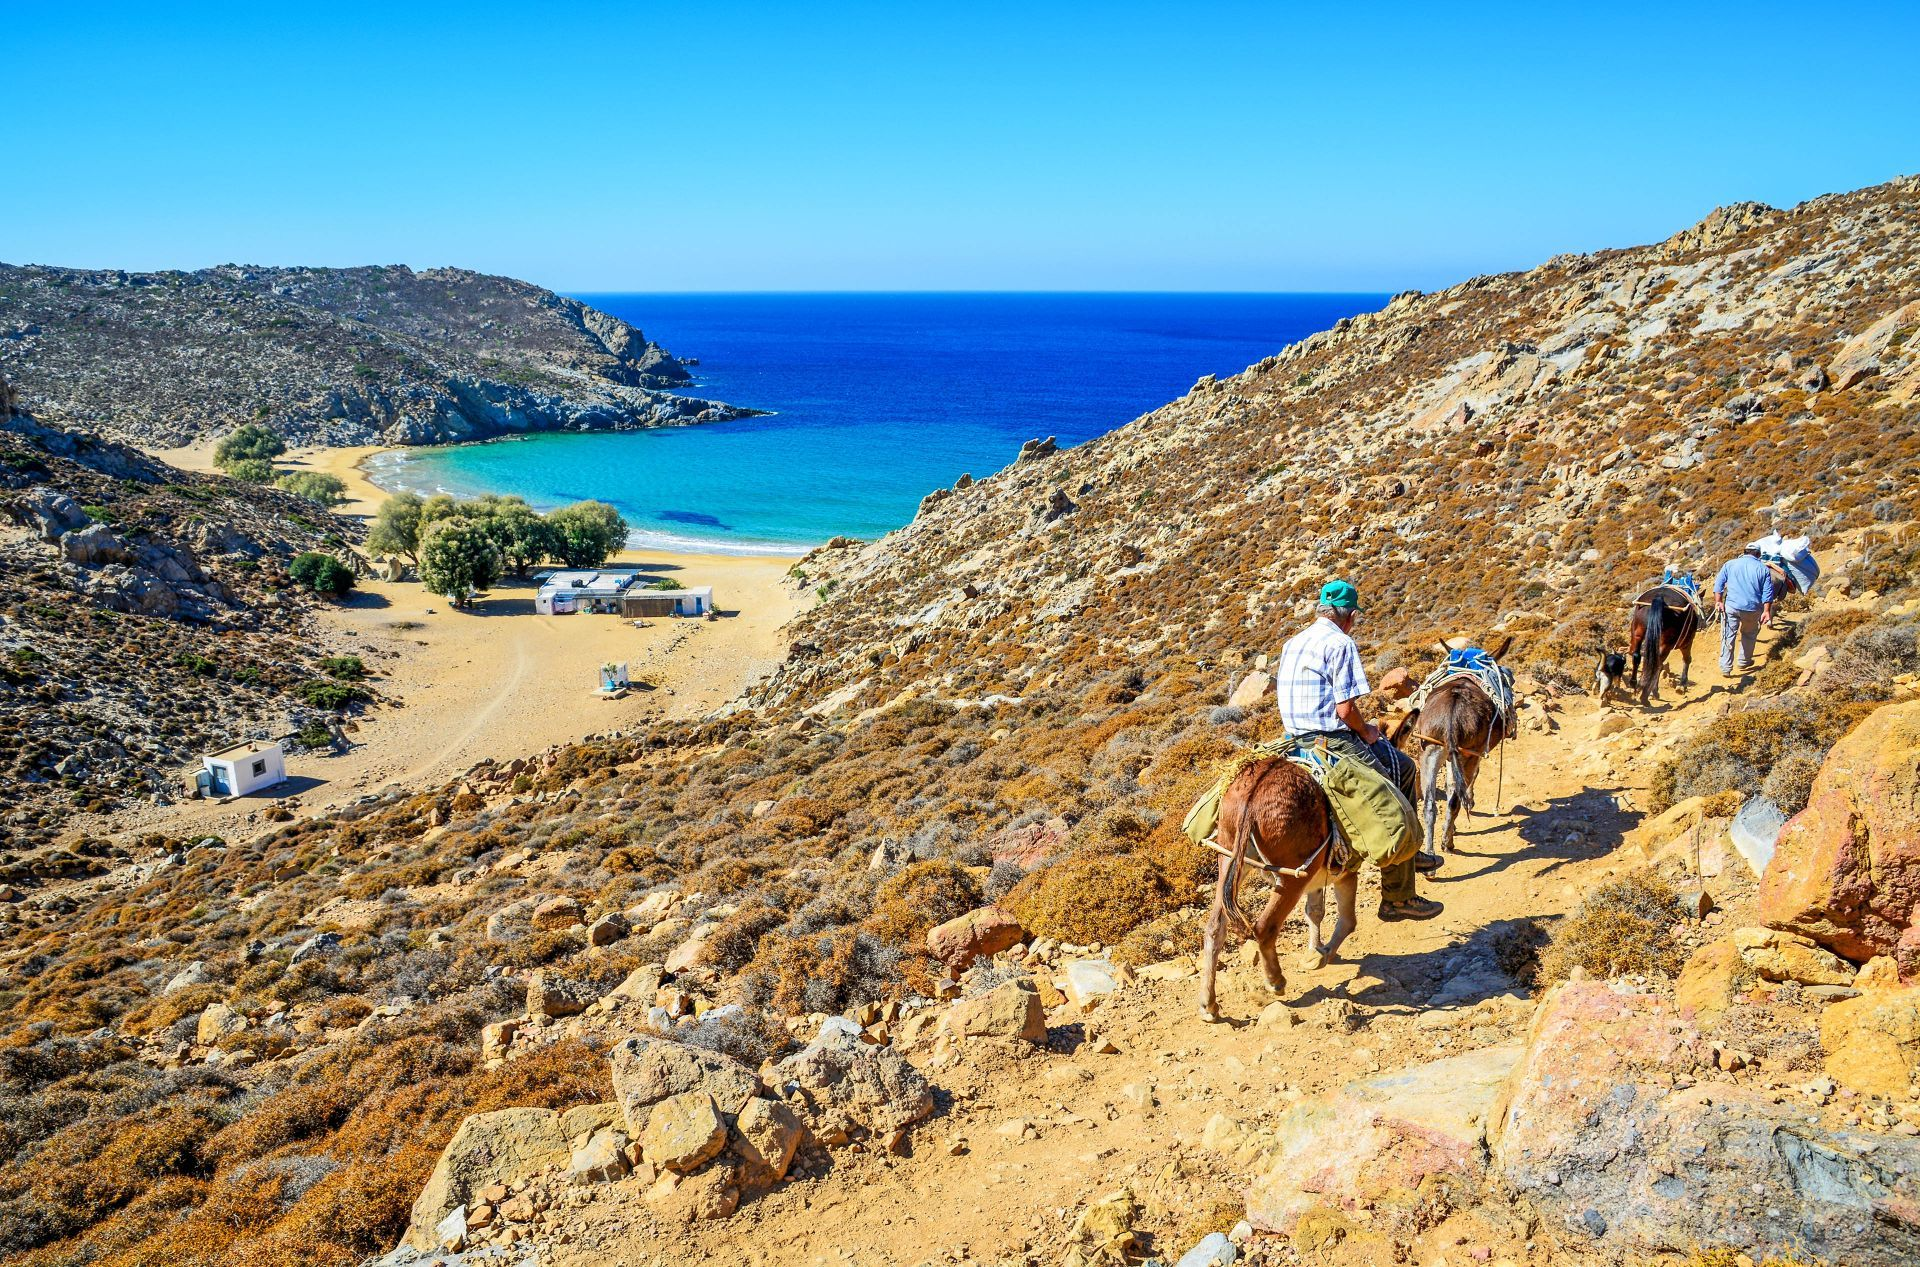 Dodecanese islands: Psili Ammos on Patmos island